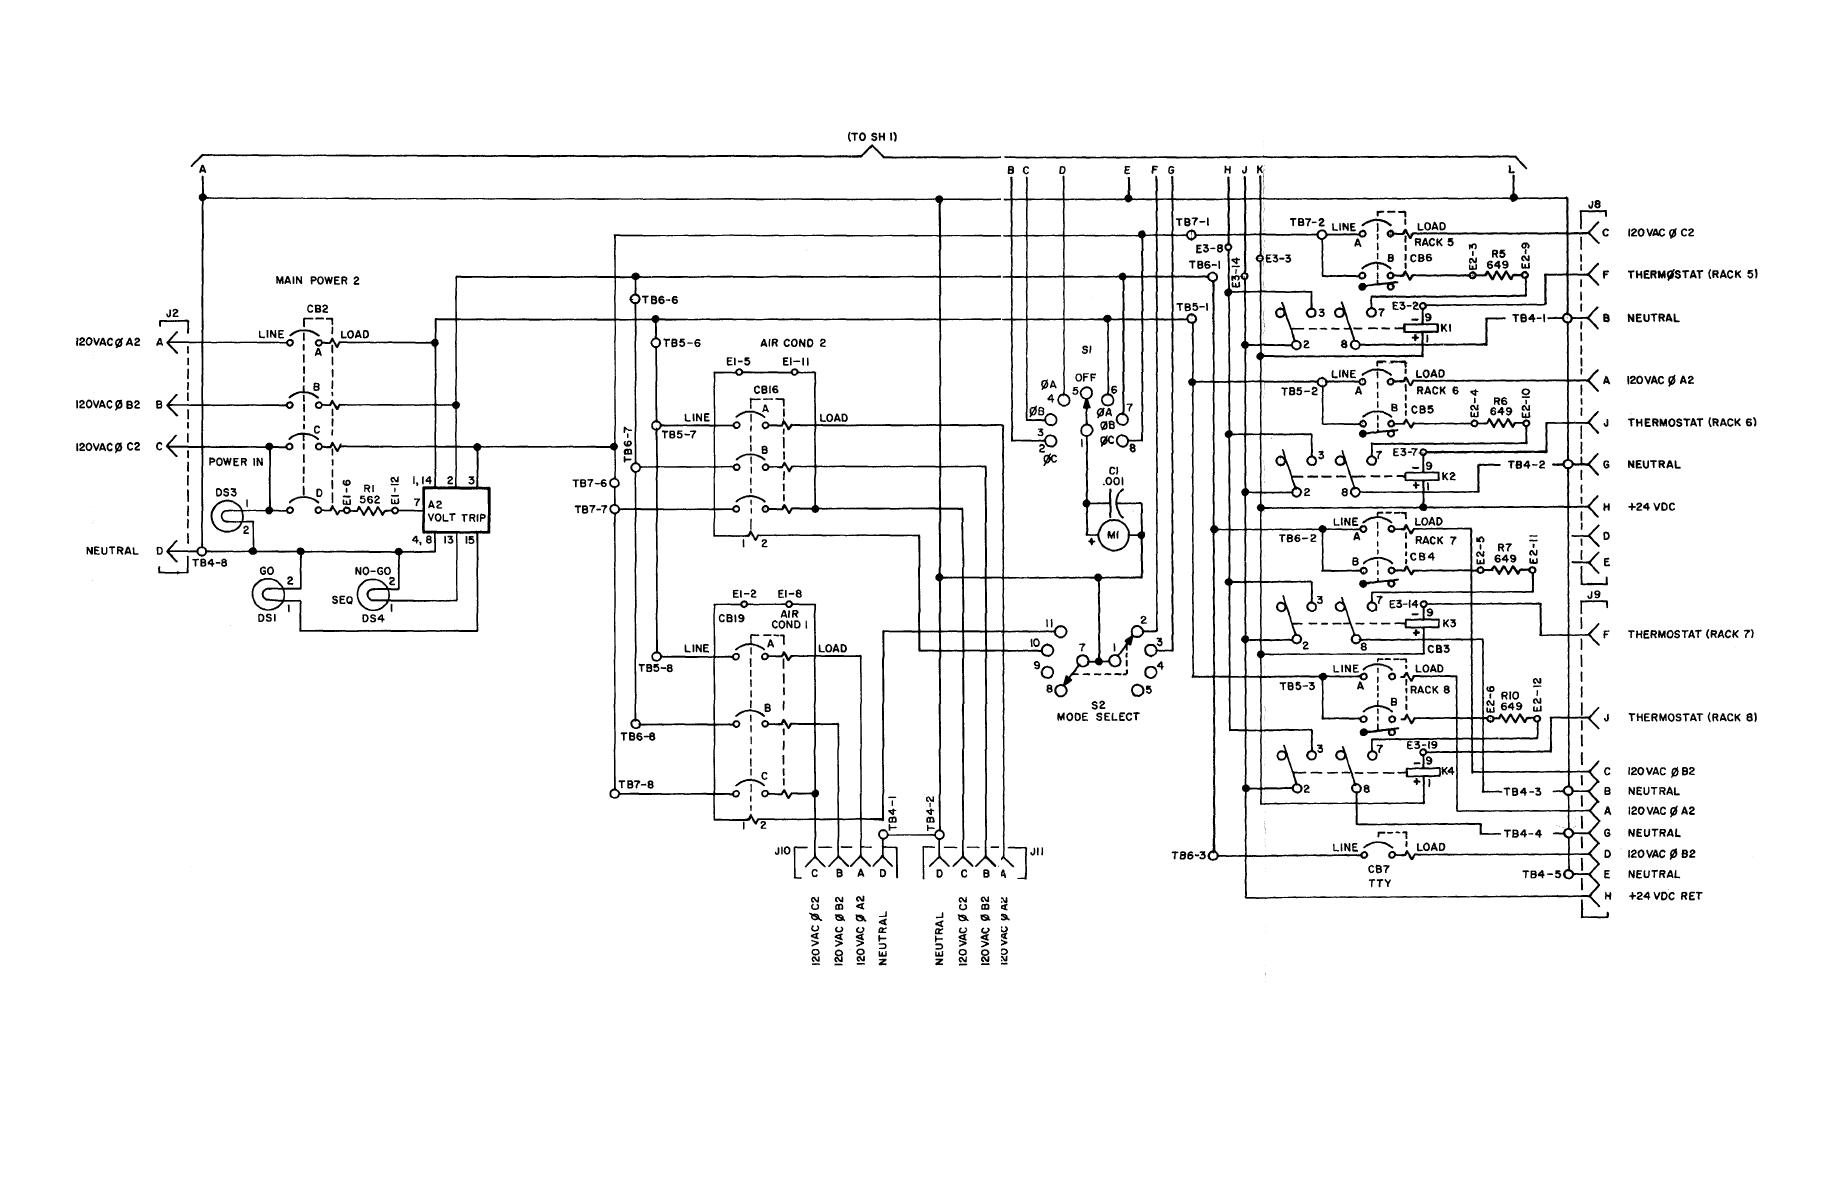 Figure Fo 6 Power Distribution Panel Schematic Wiring Diagram Sheet 2 Of 2